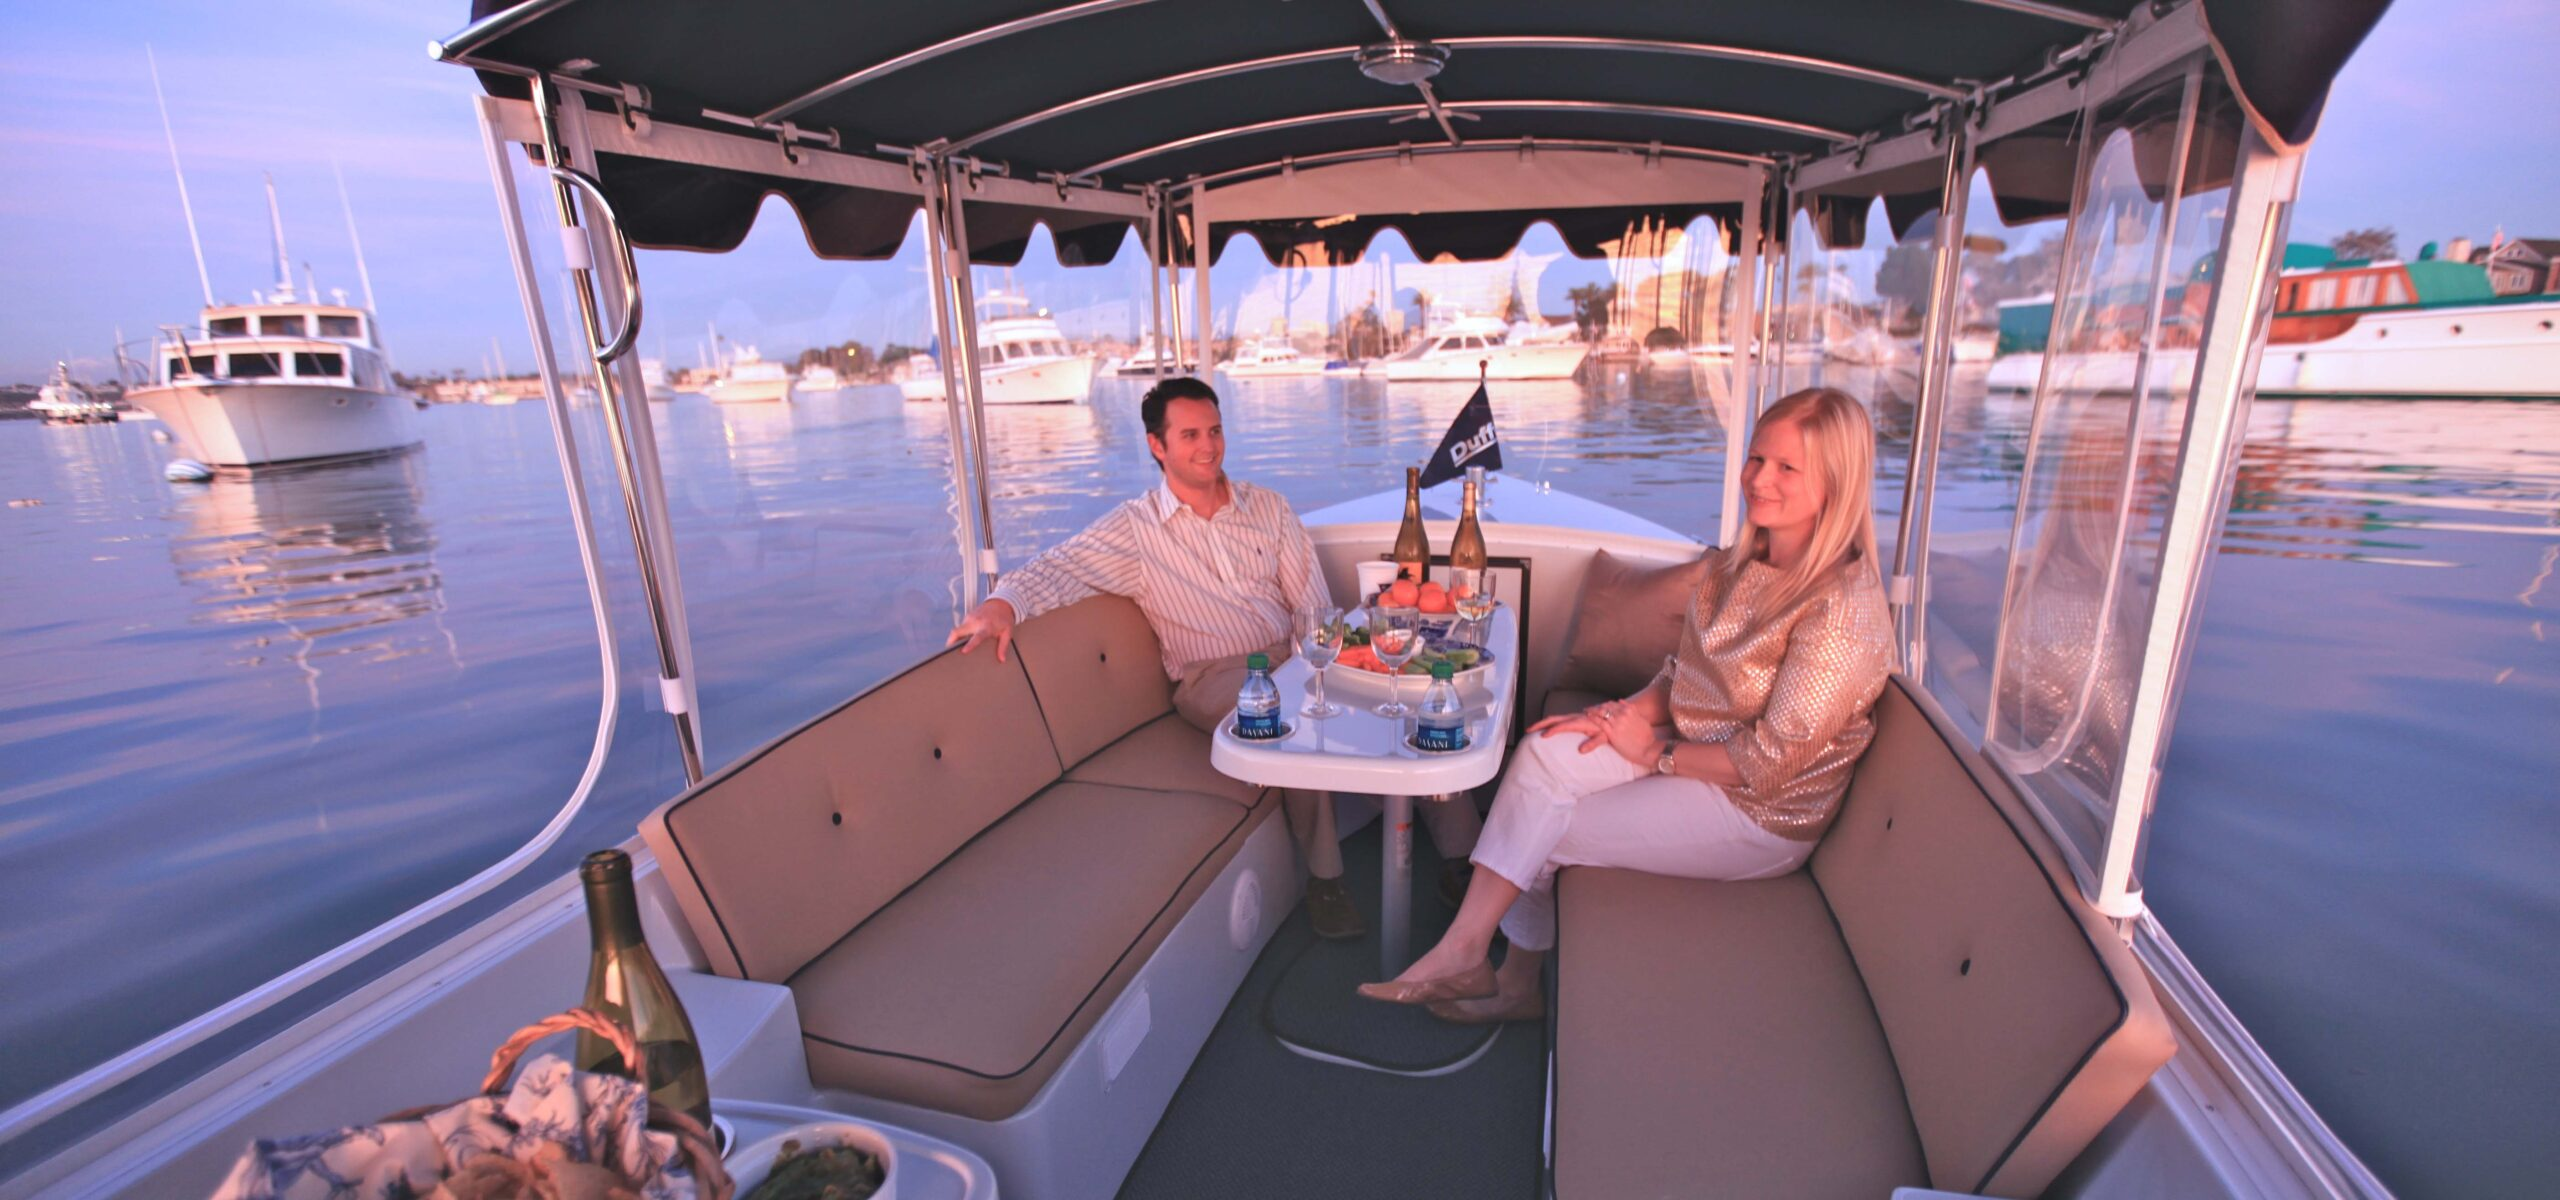 Two people enjoying a sunset picnic dinner on a Seattle Electric Boat rental.